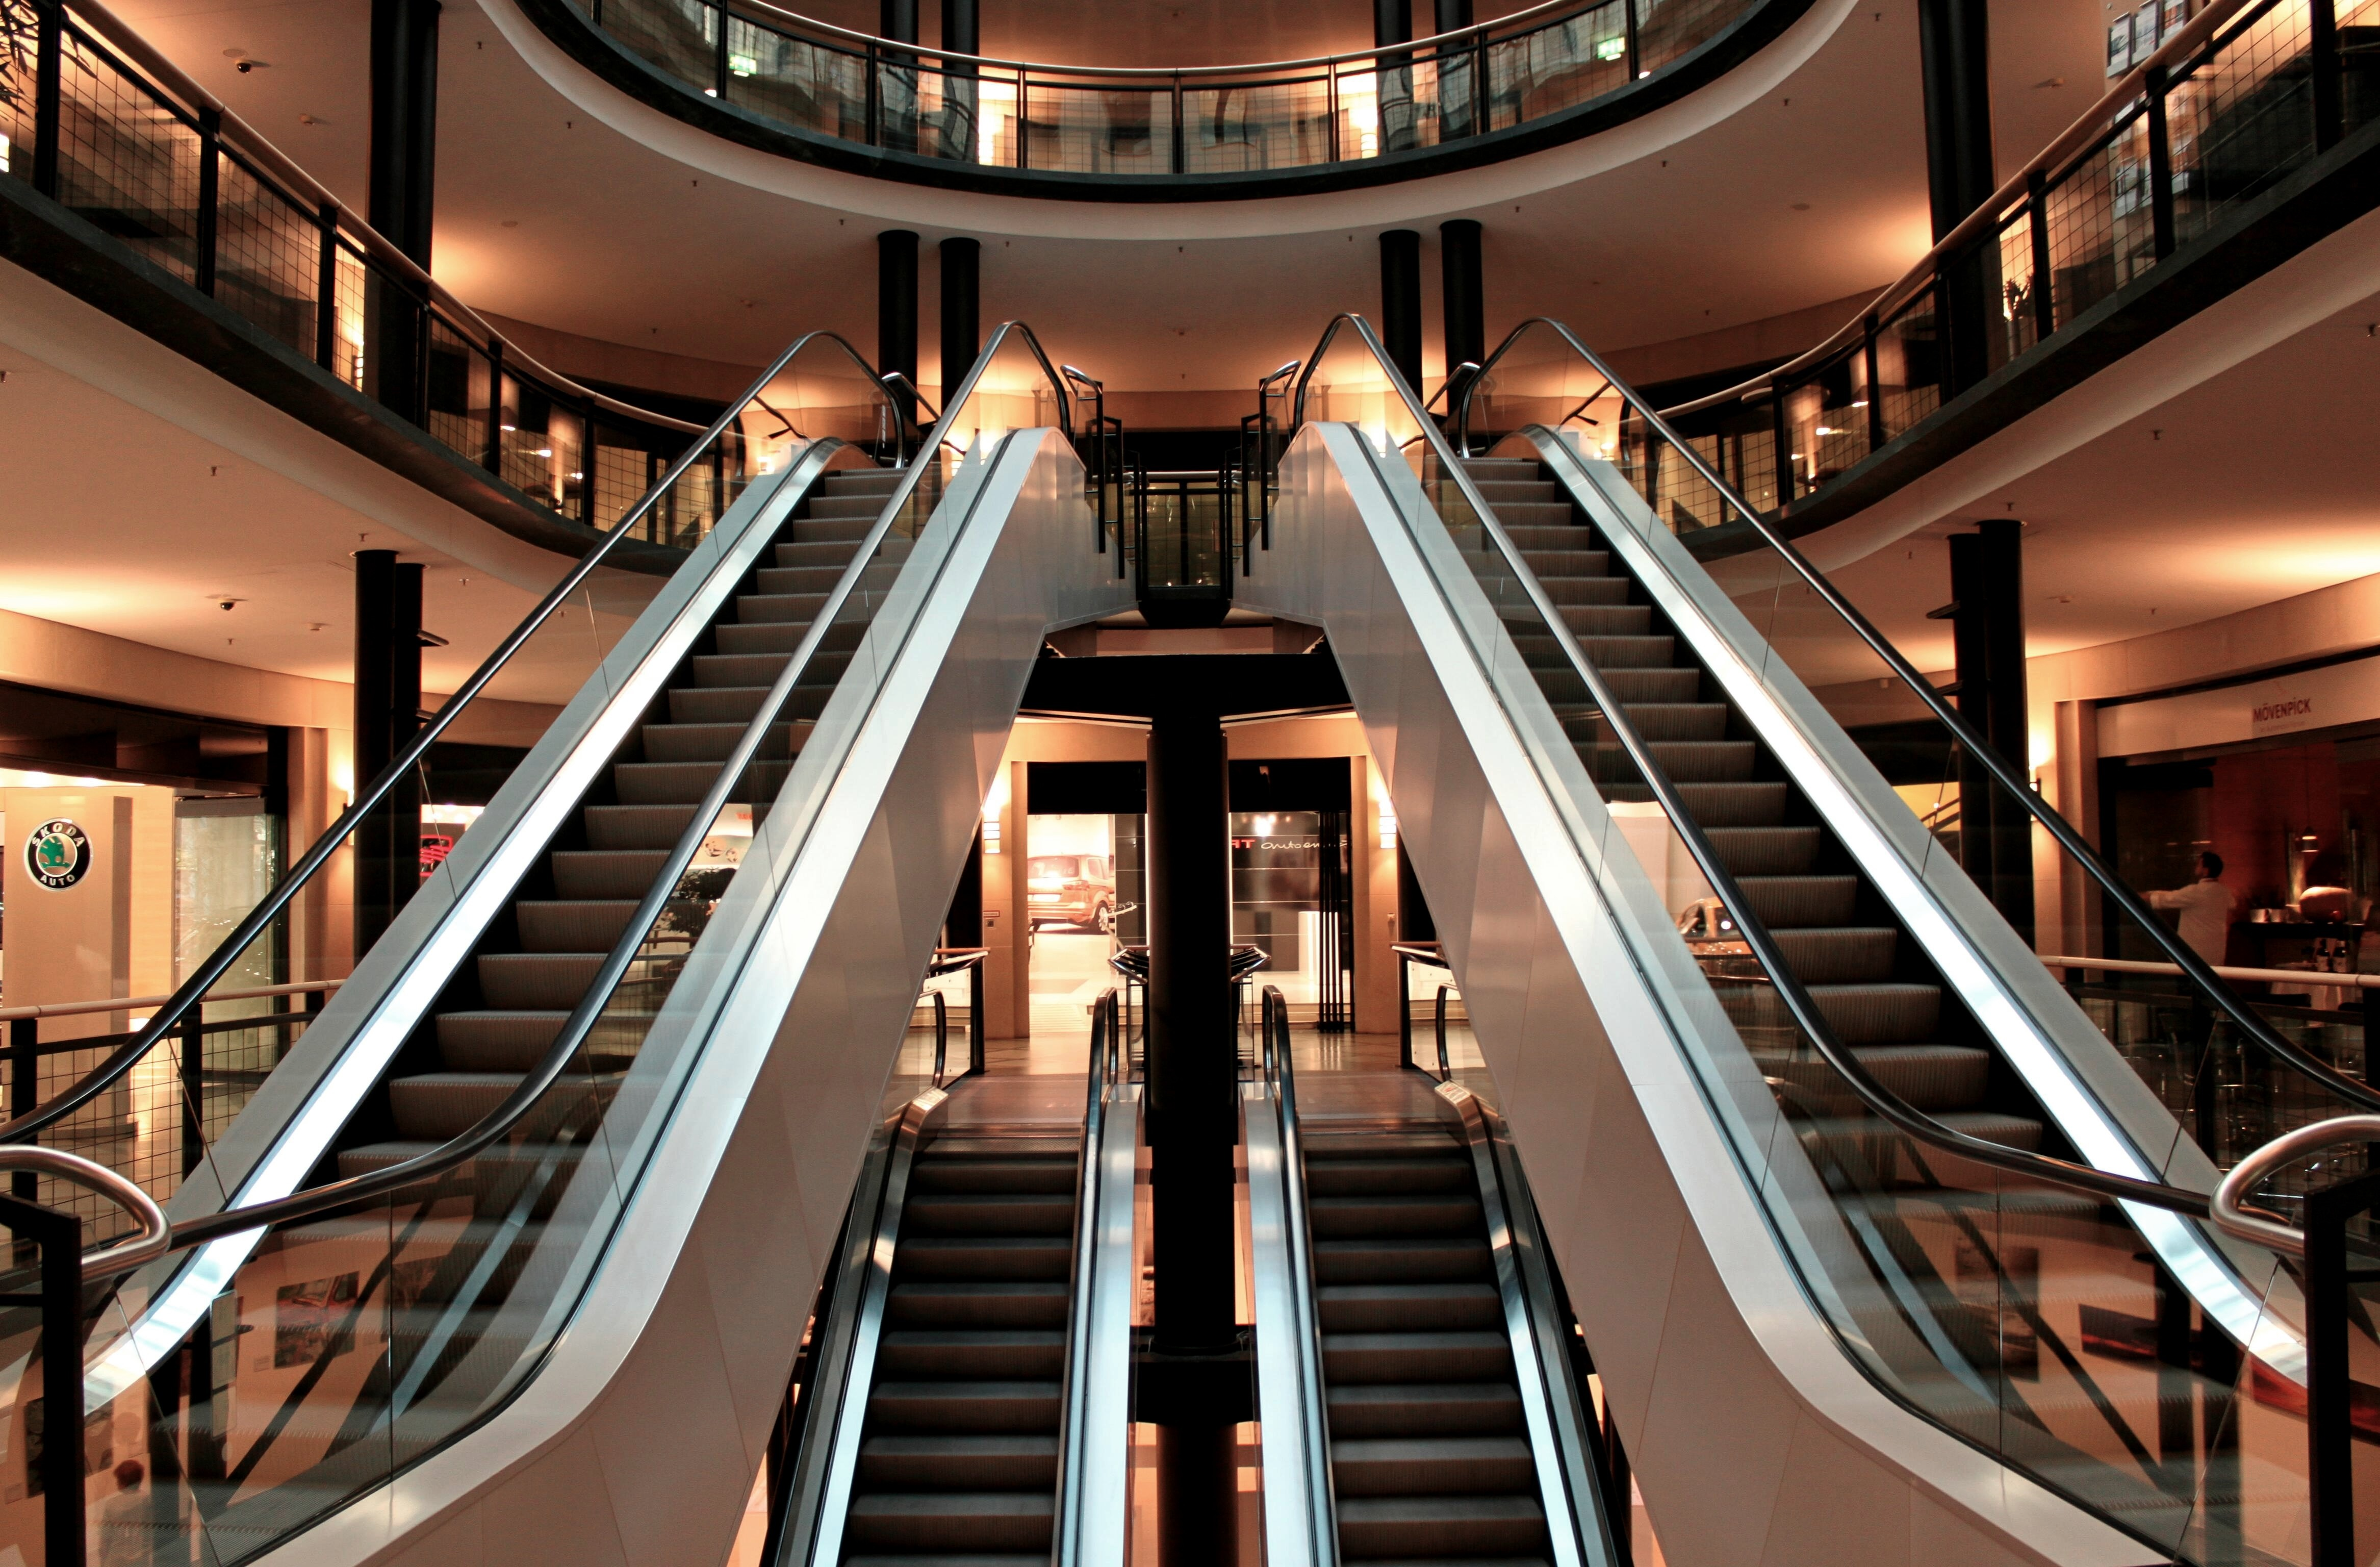 escalator-stairs-metal-segments-architecture-54581.jpeg